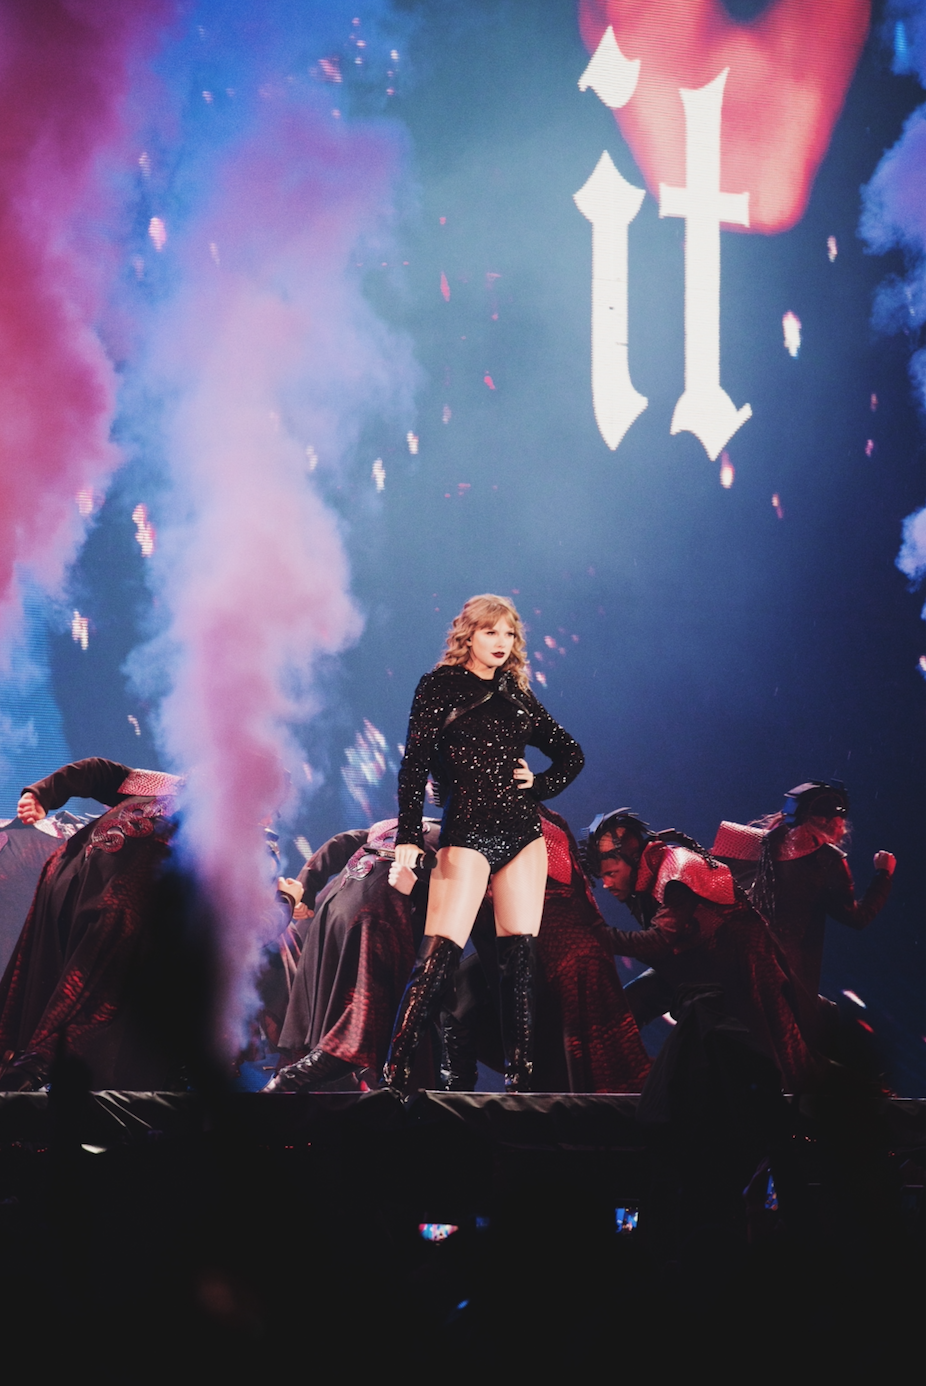 Taylor Swift performing at NRG Stadium in Houston, TX.